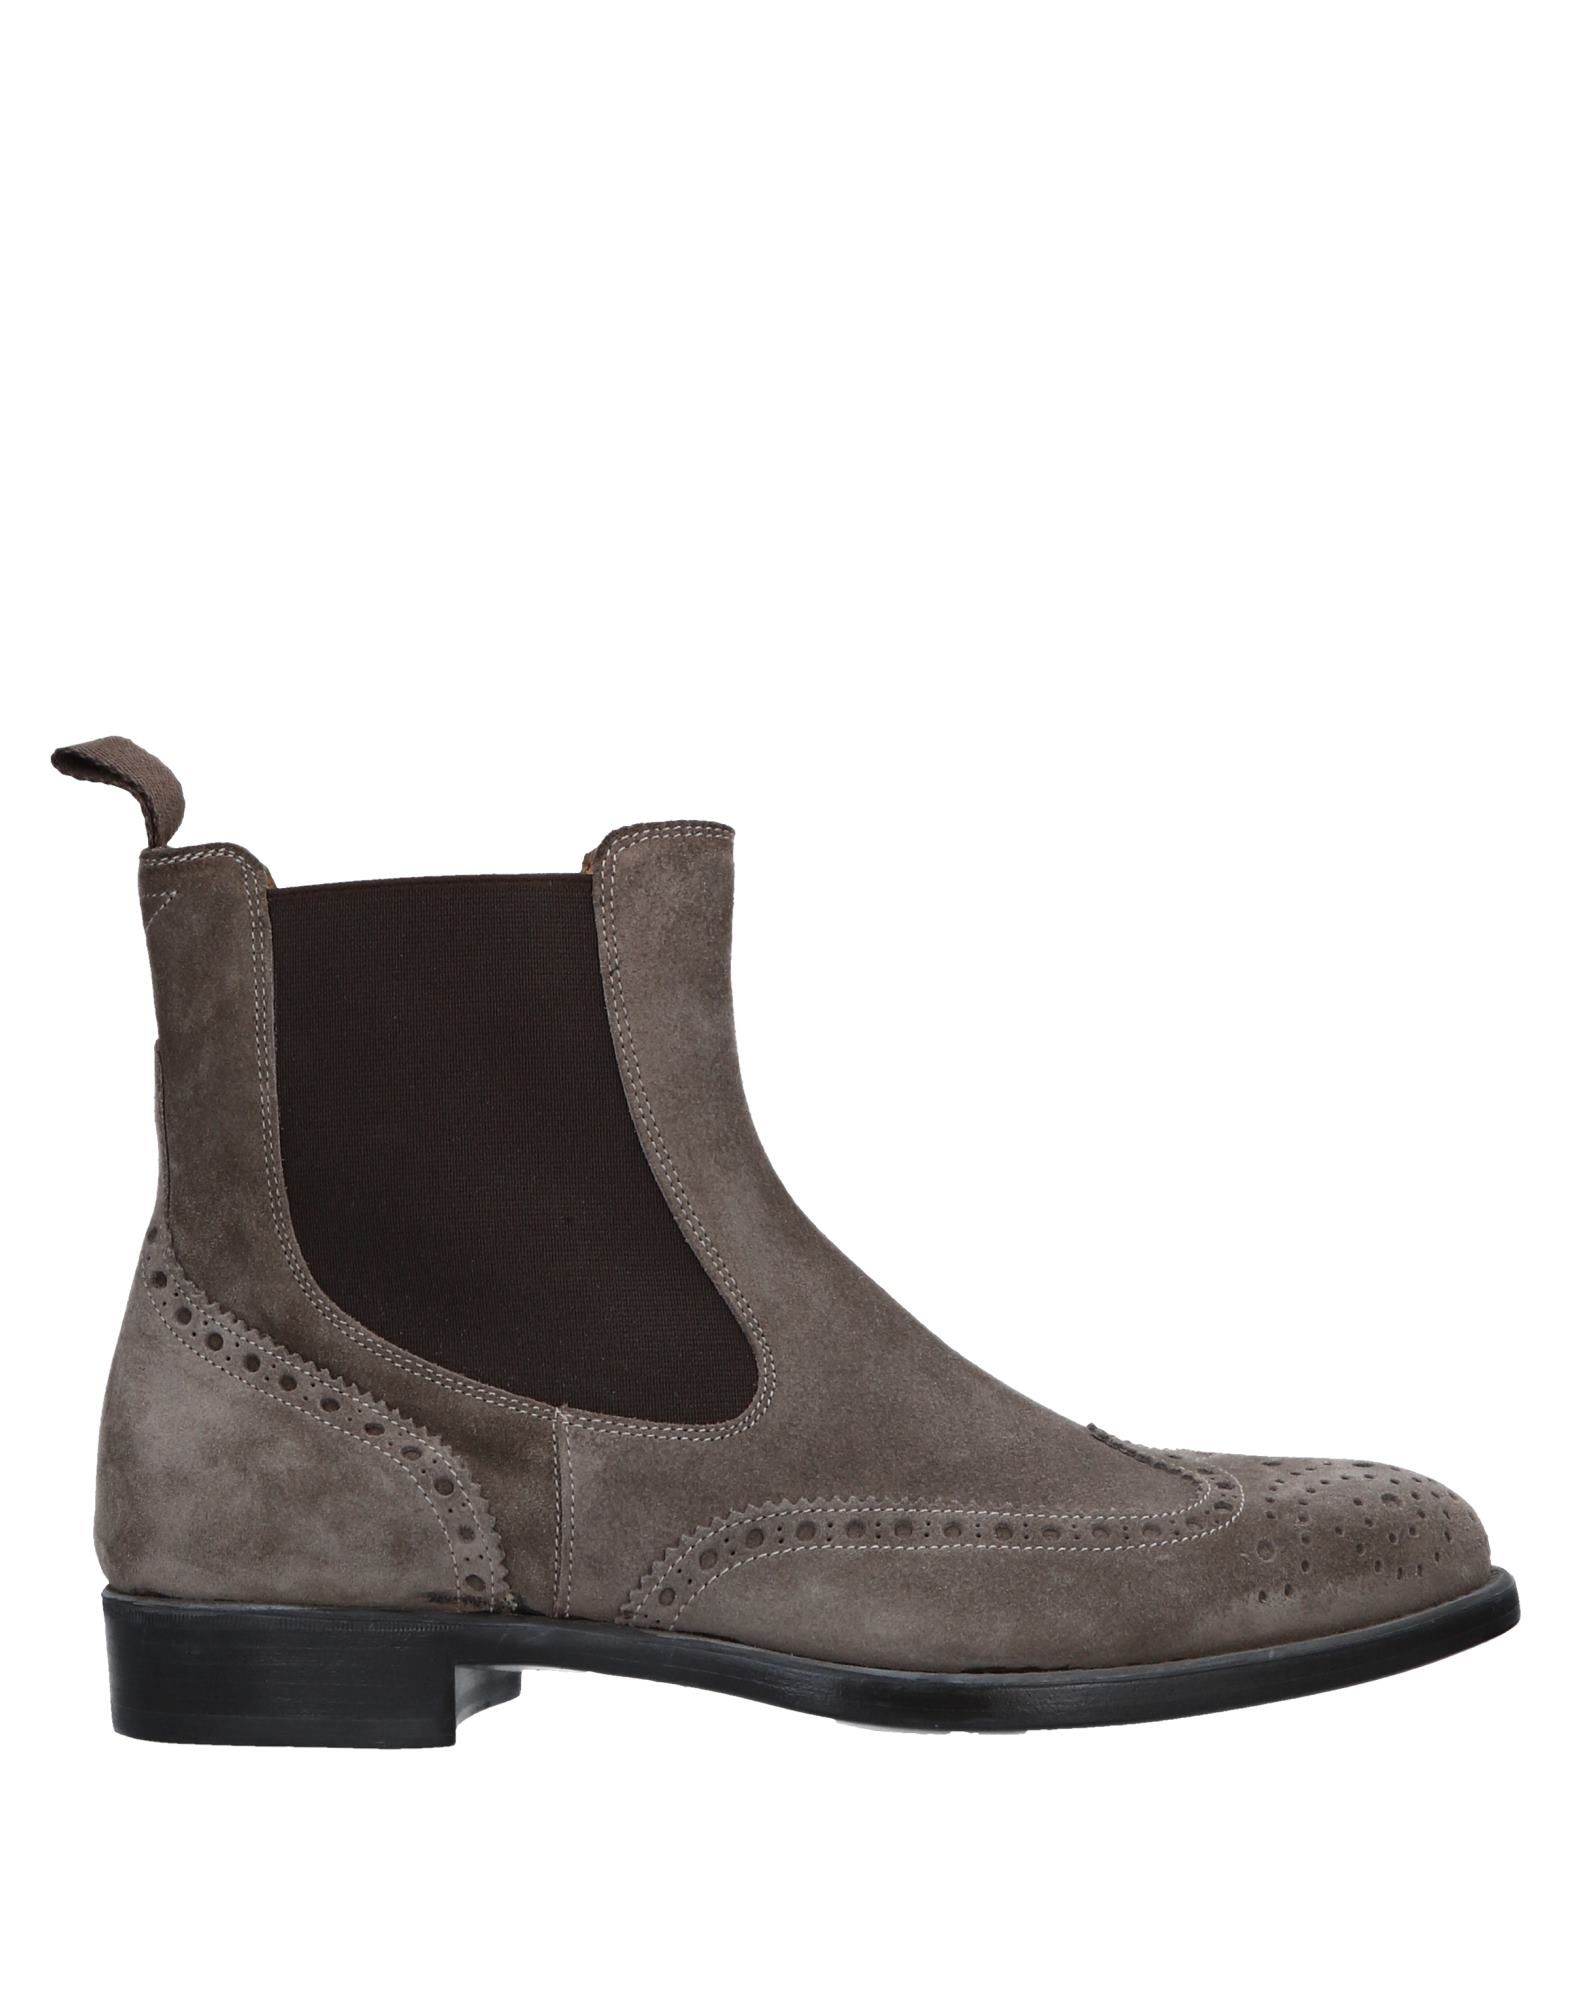 Chelsea Boots Wexford Donna - 11523735HW